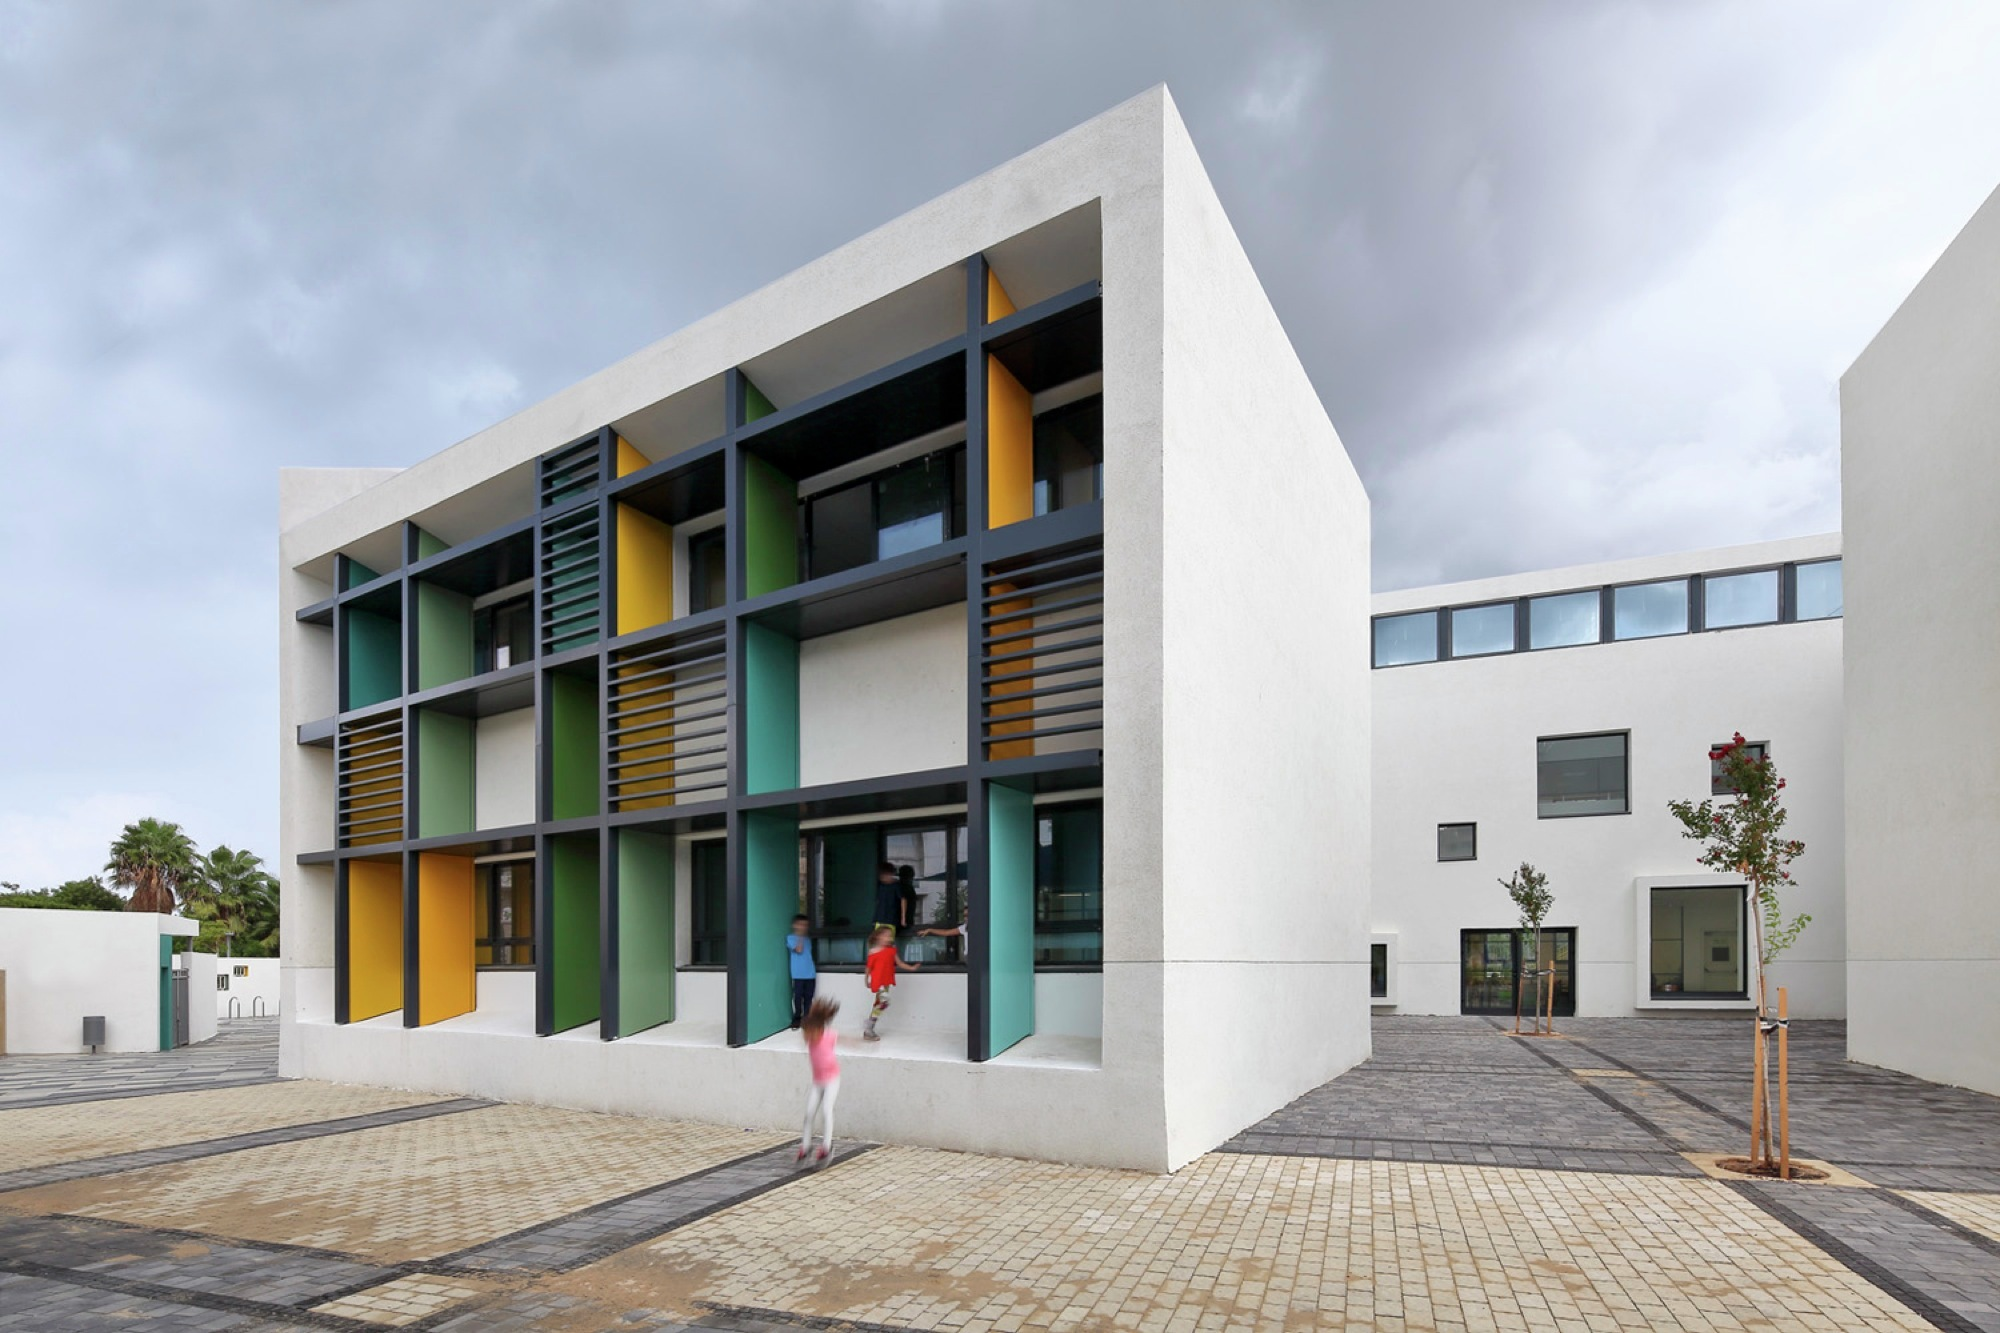 Elementary School in Tel Aviv Auerbach Halevy Architects